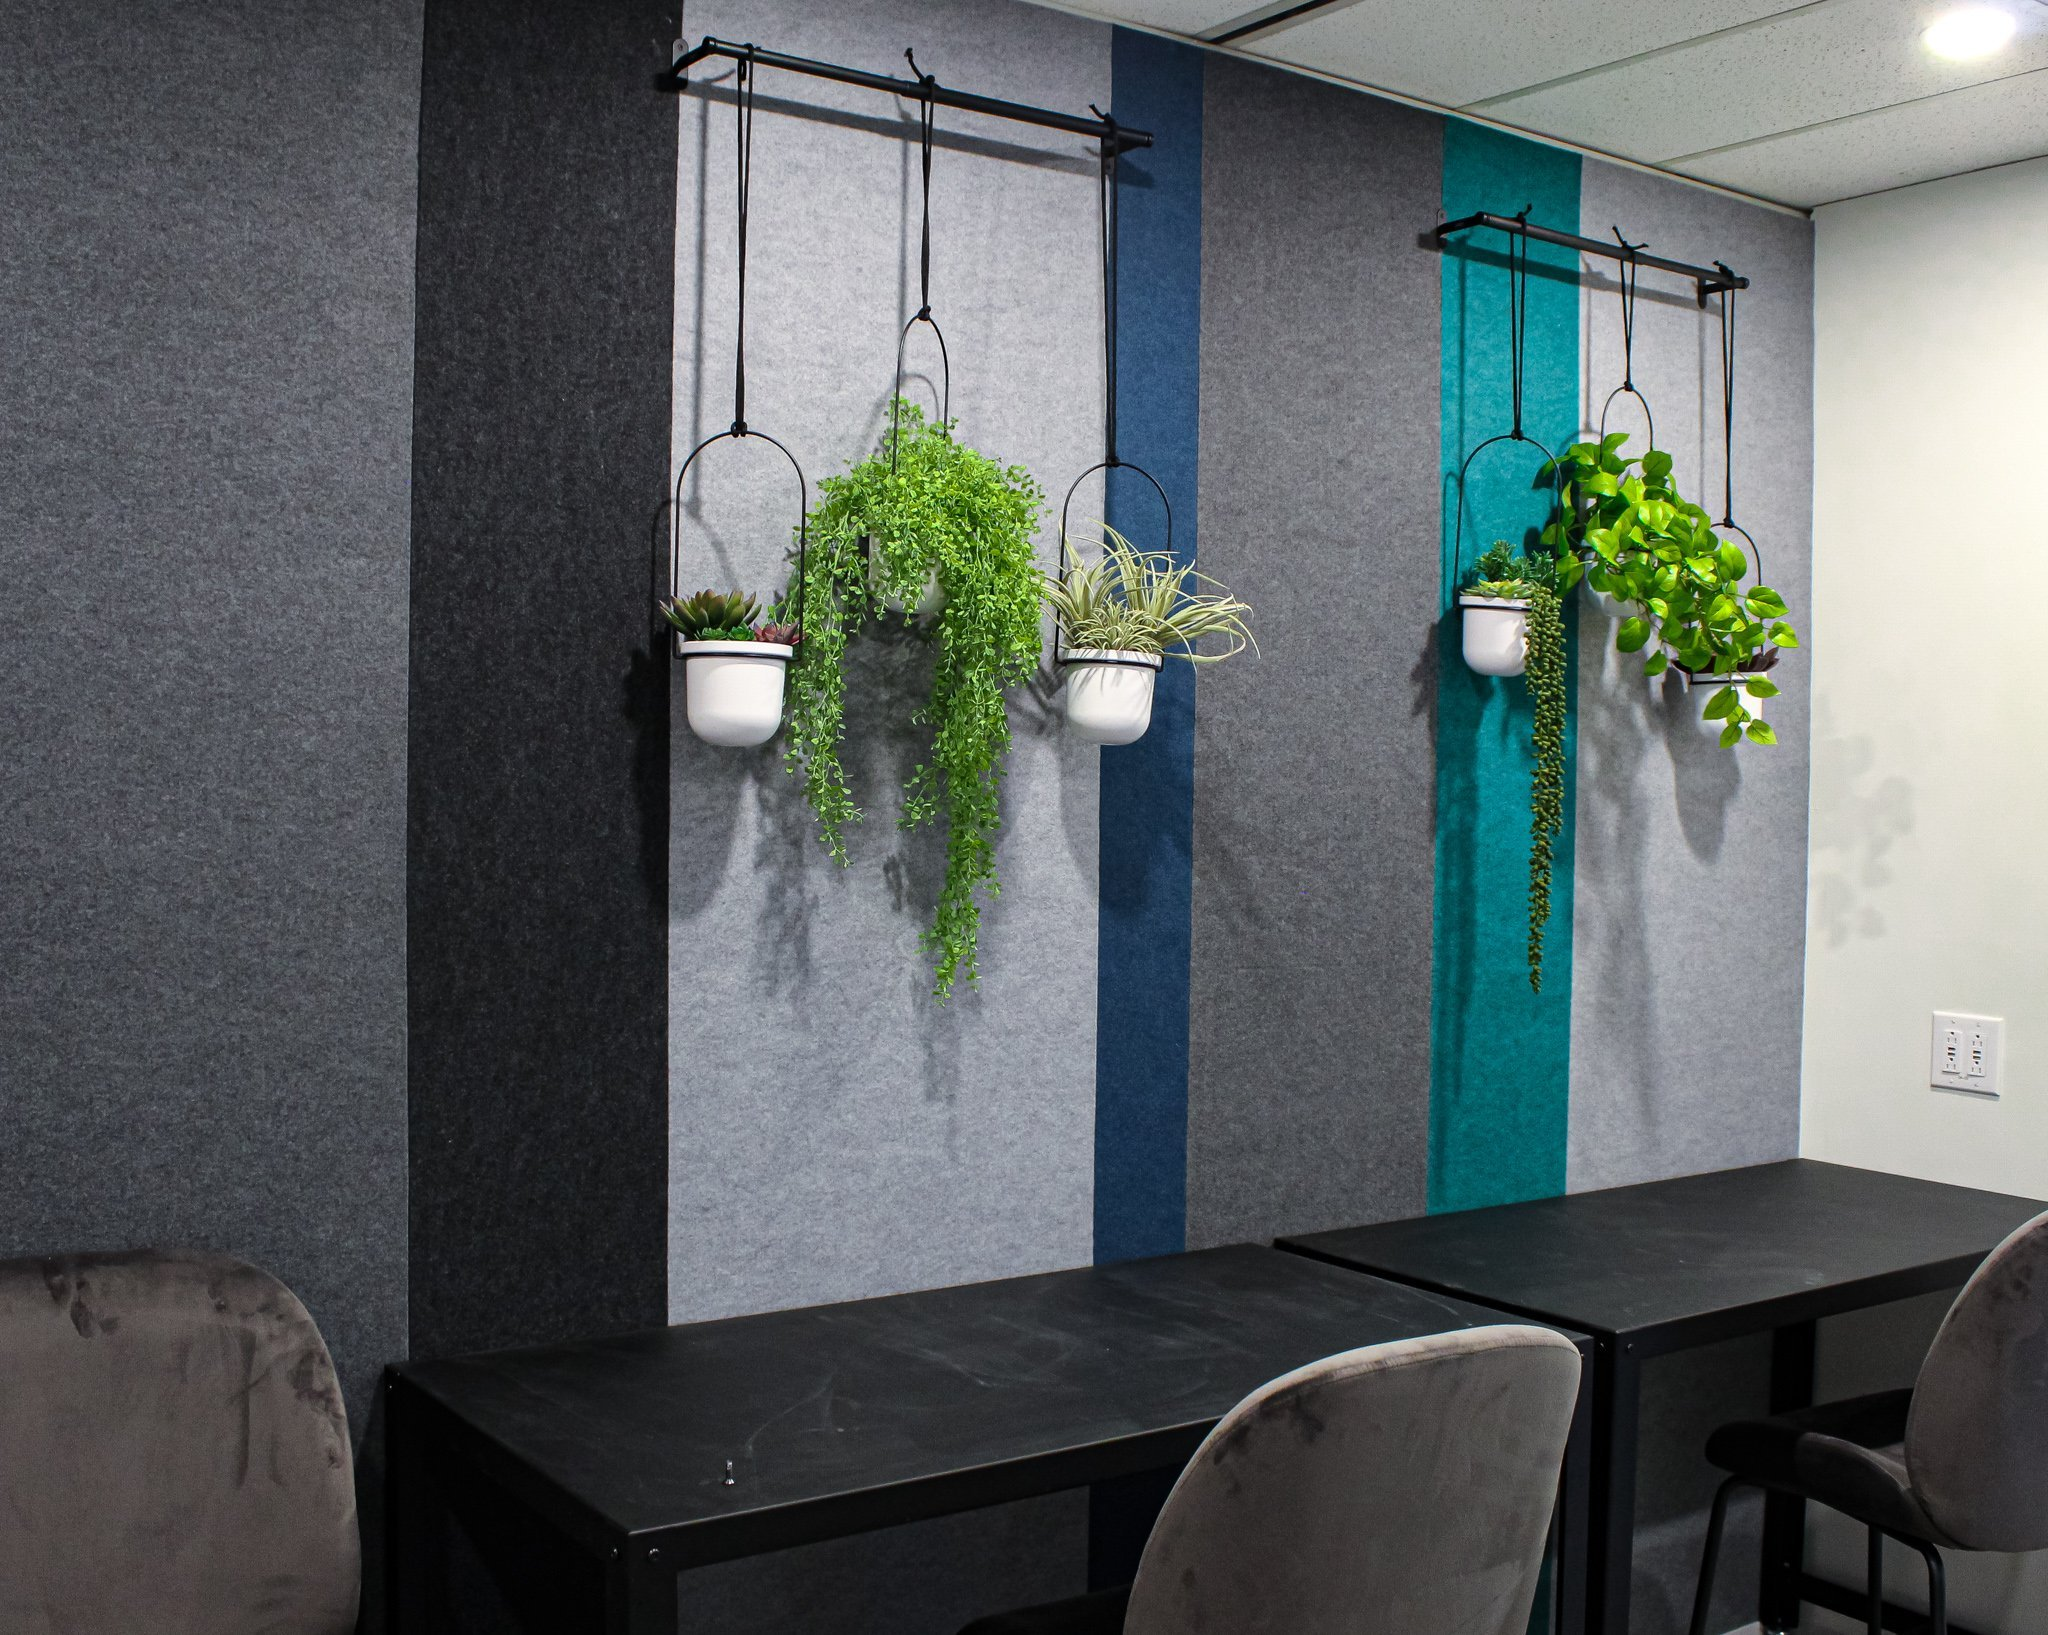 hanging planters from rope on wall bar anchor filled with artificial mixed greenery including baby tear, air plants and succulents, in office building coffee bar